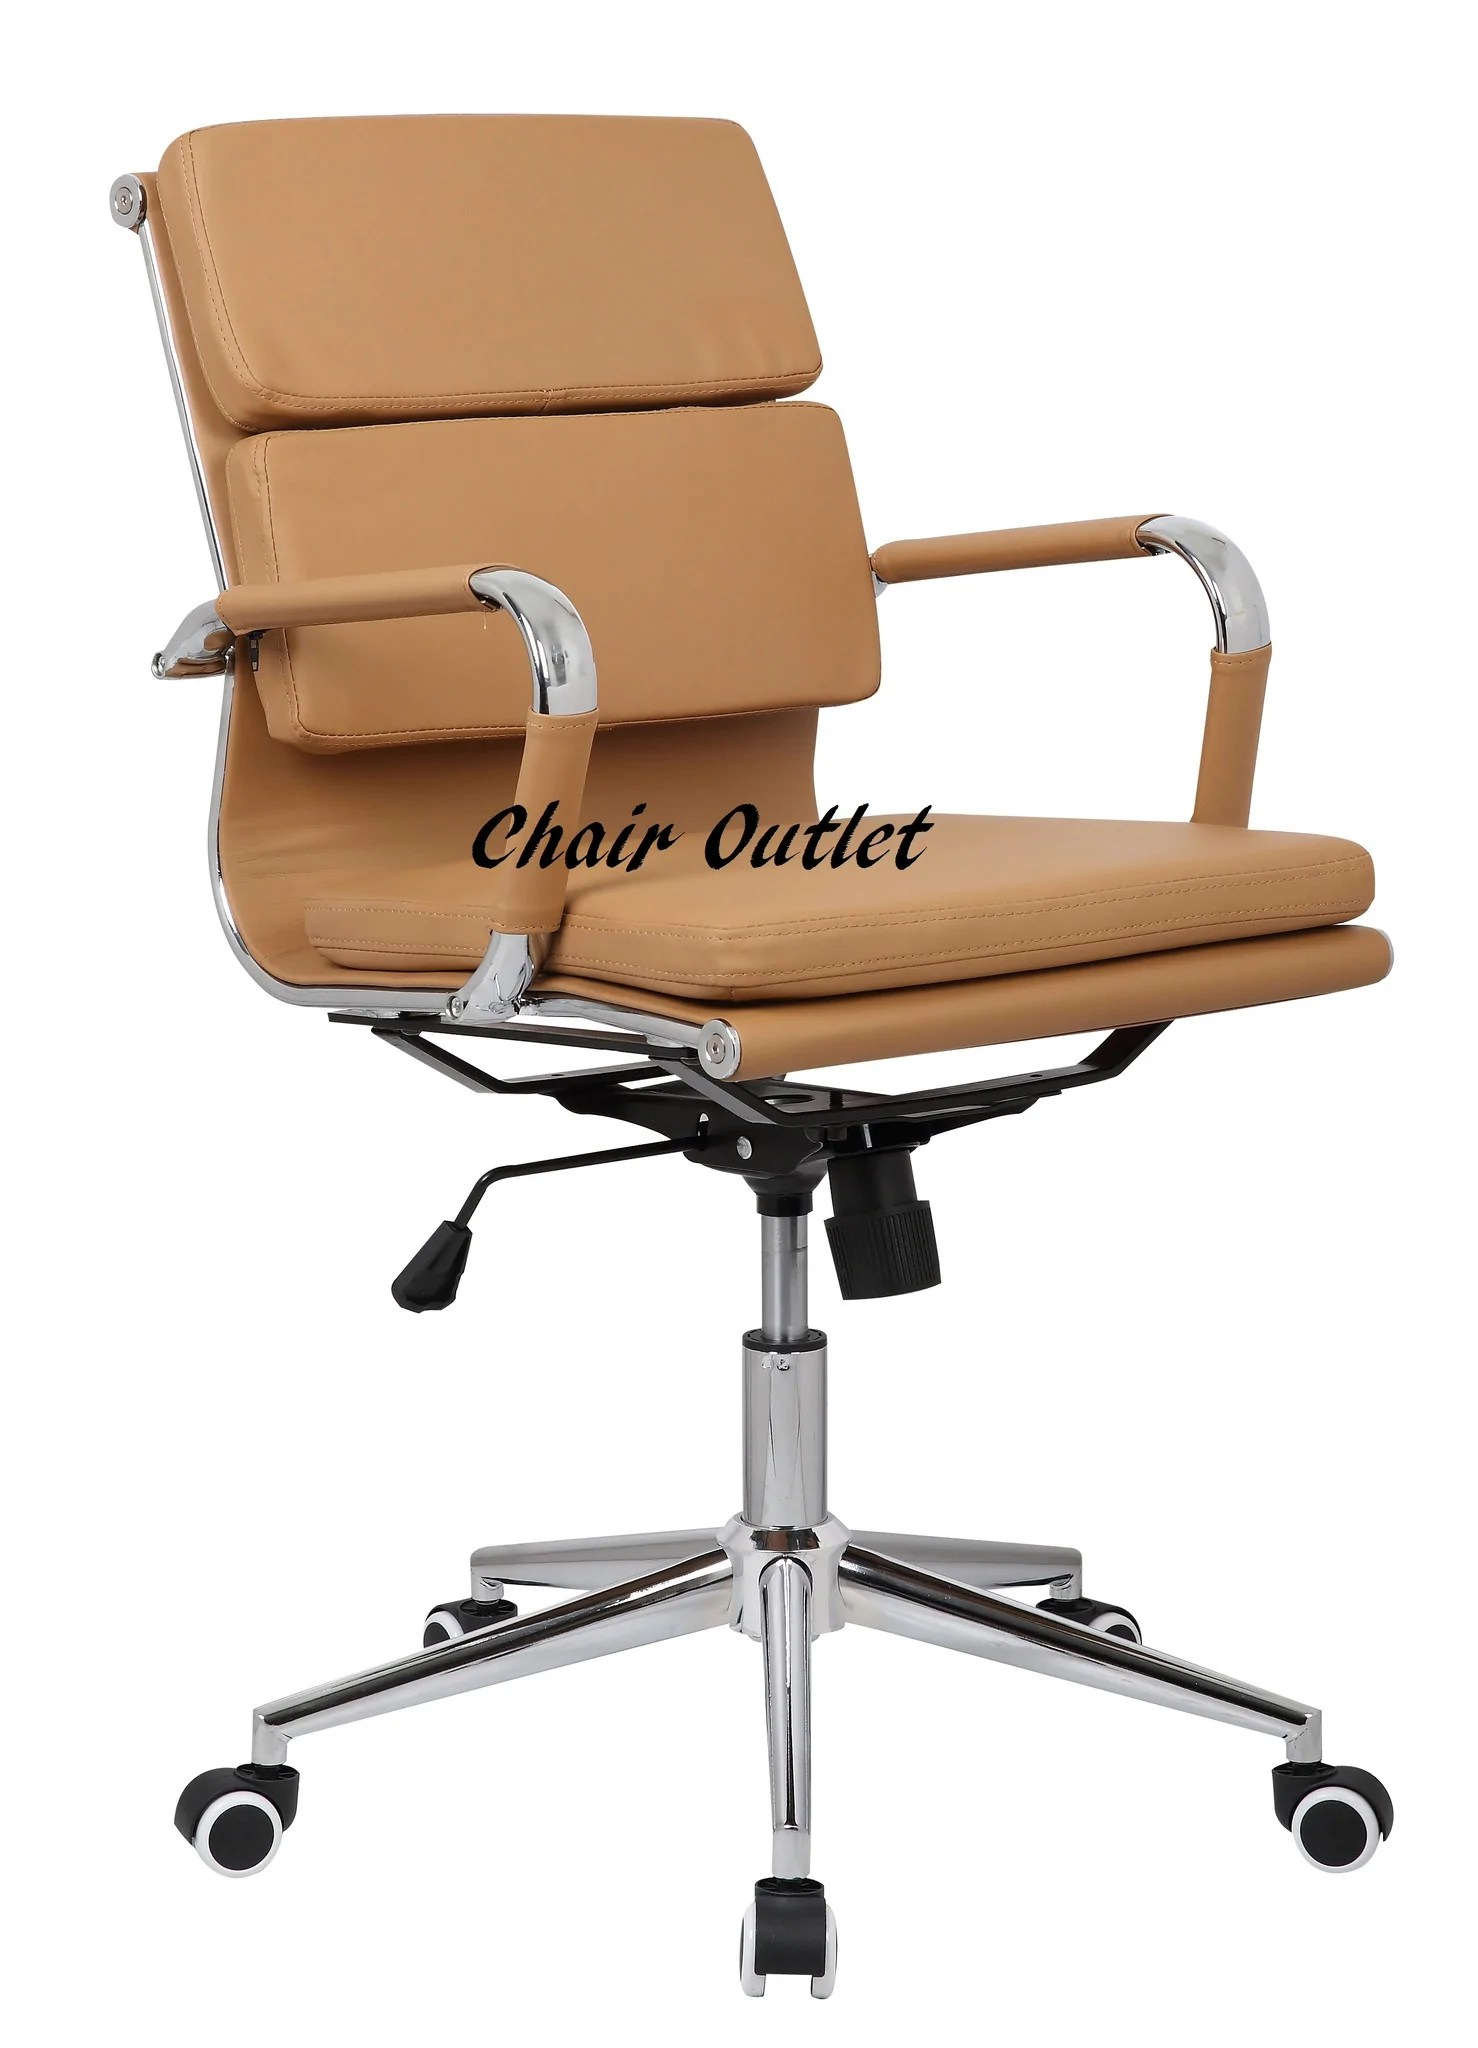 Tan Designer Office Chair  Chair Outlet